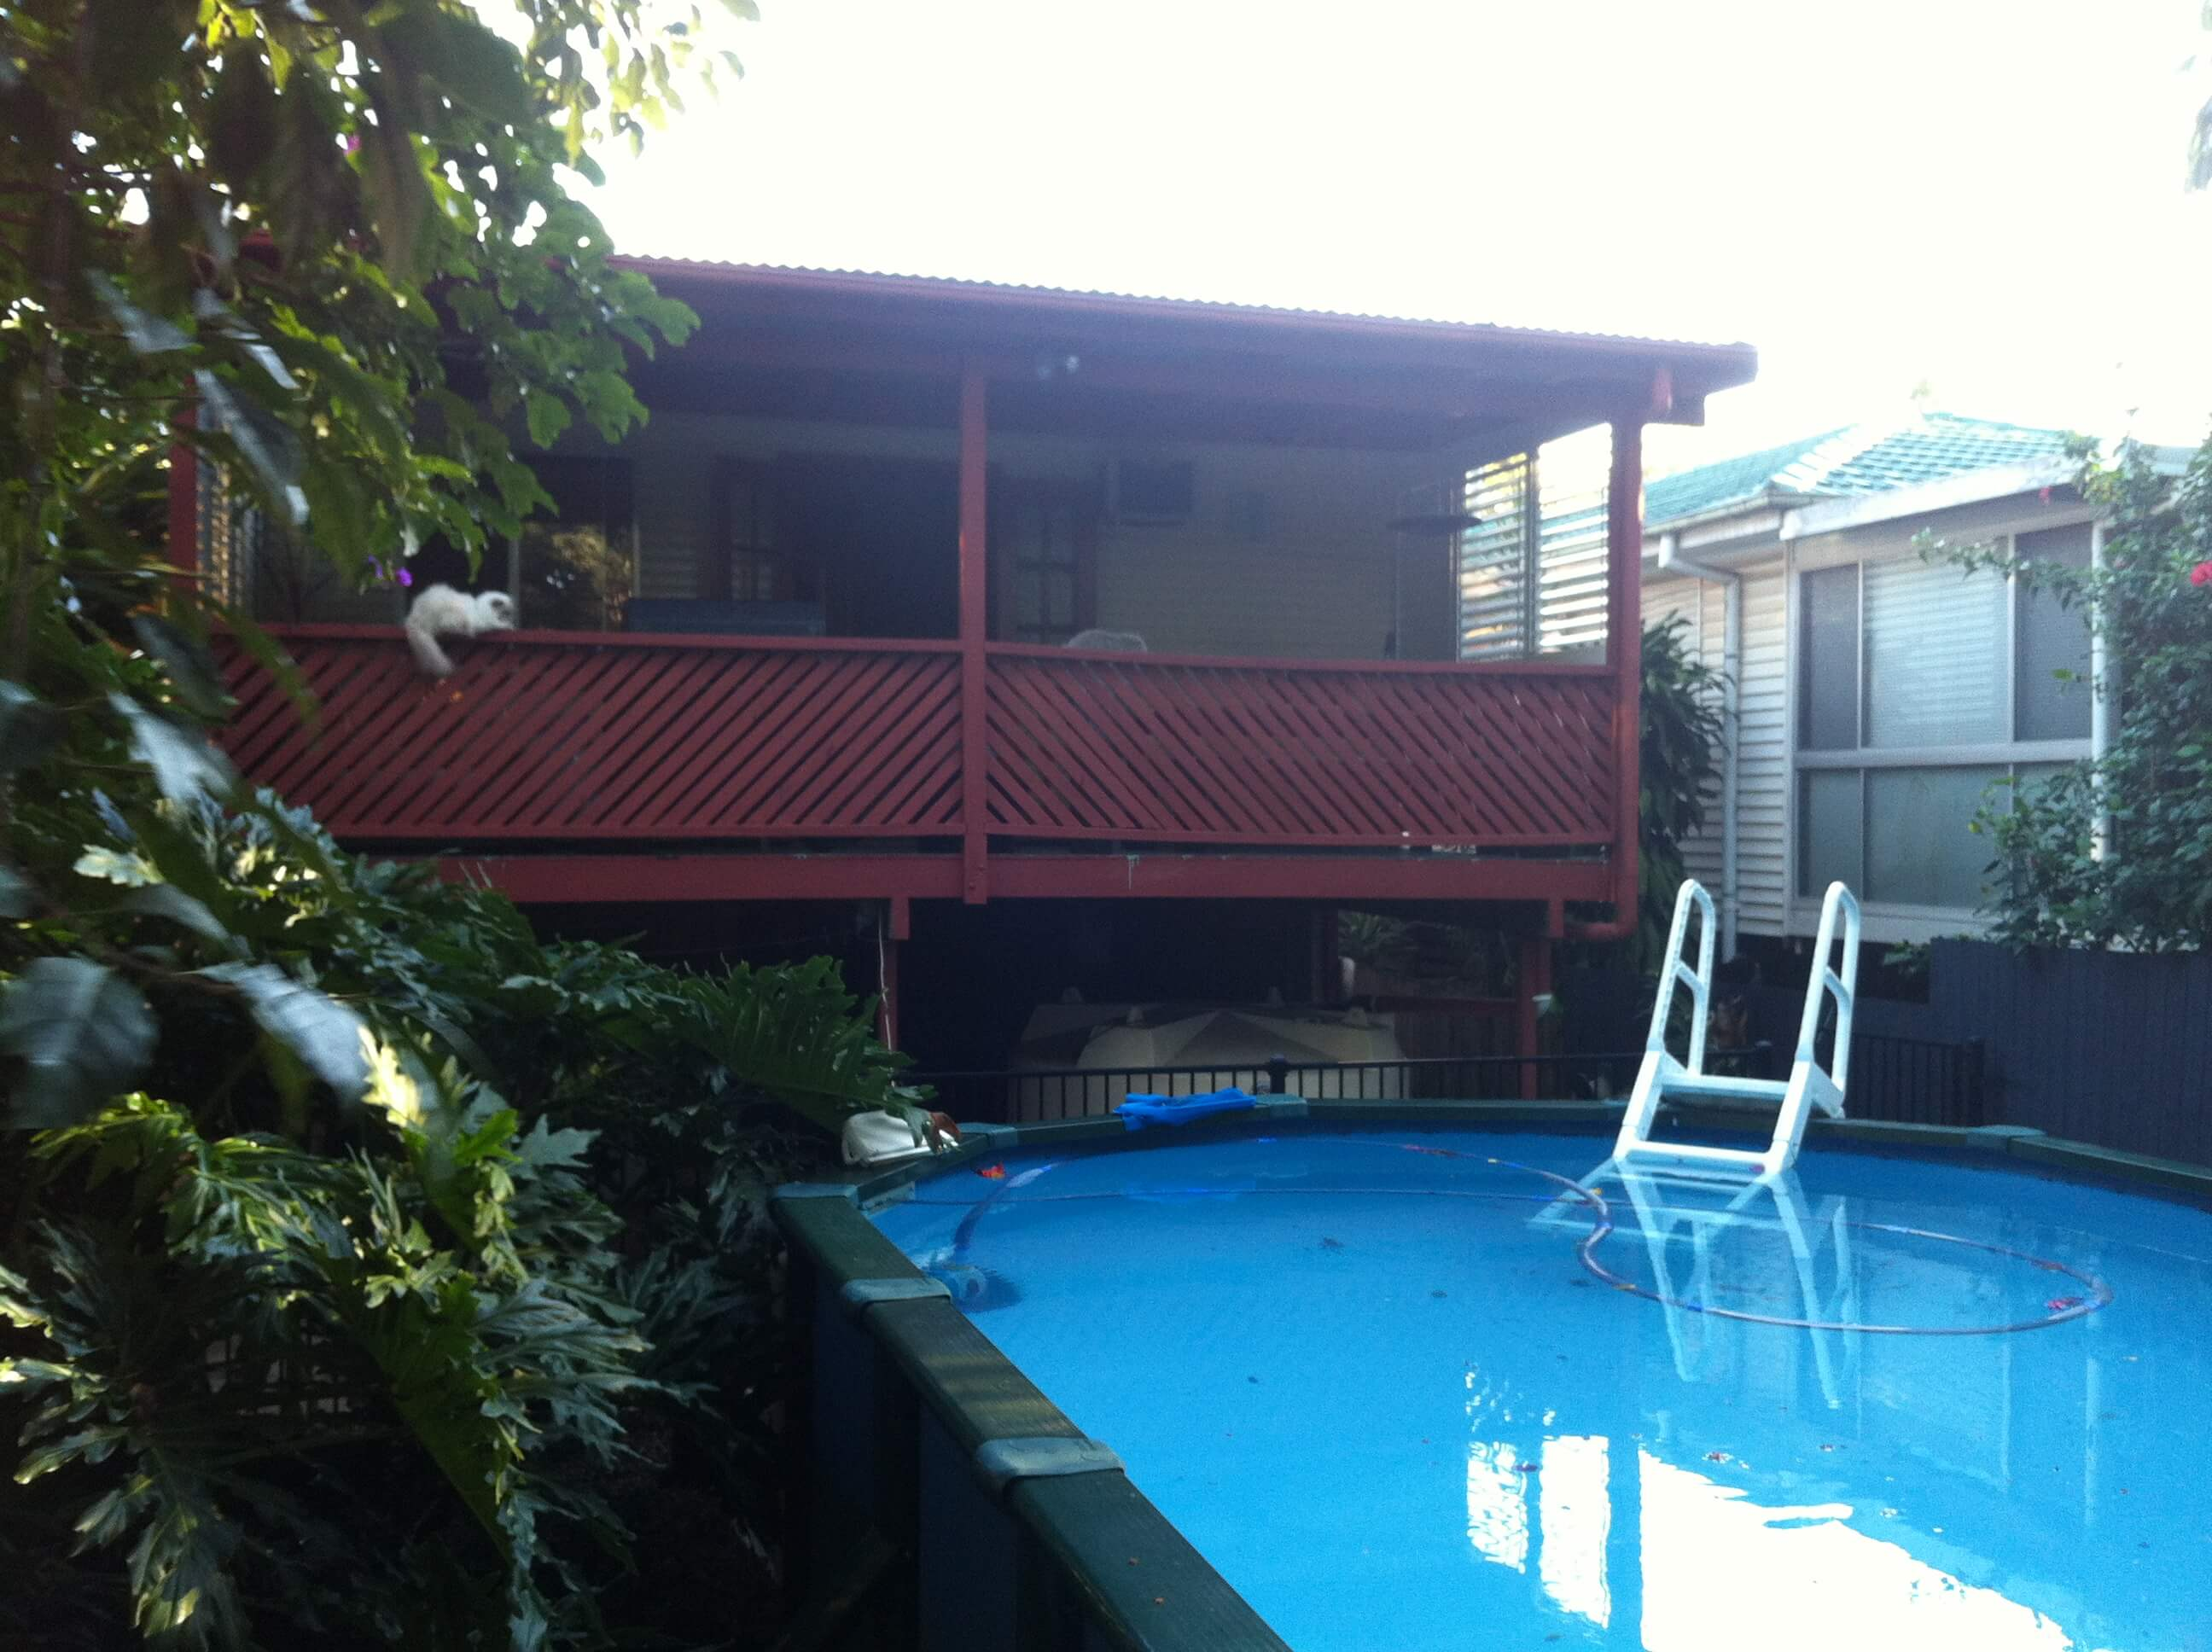 Adaptit deck around pool before construction